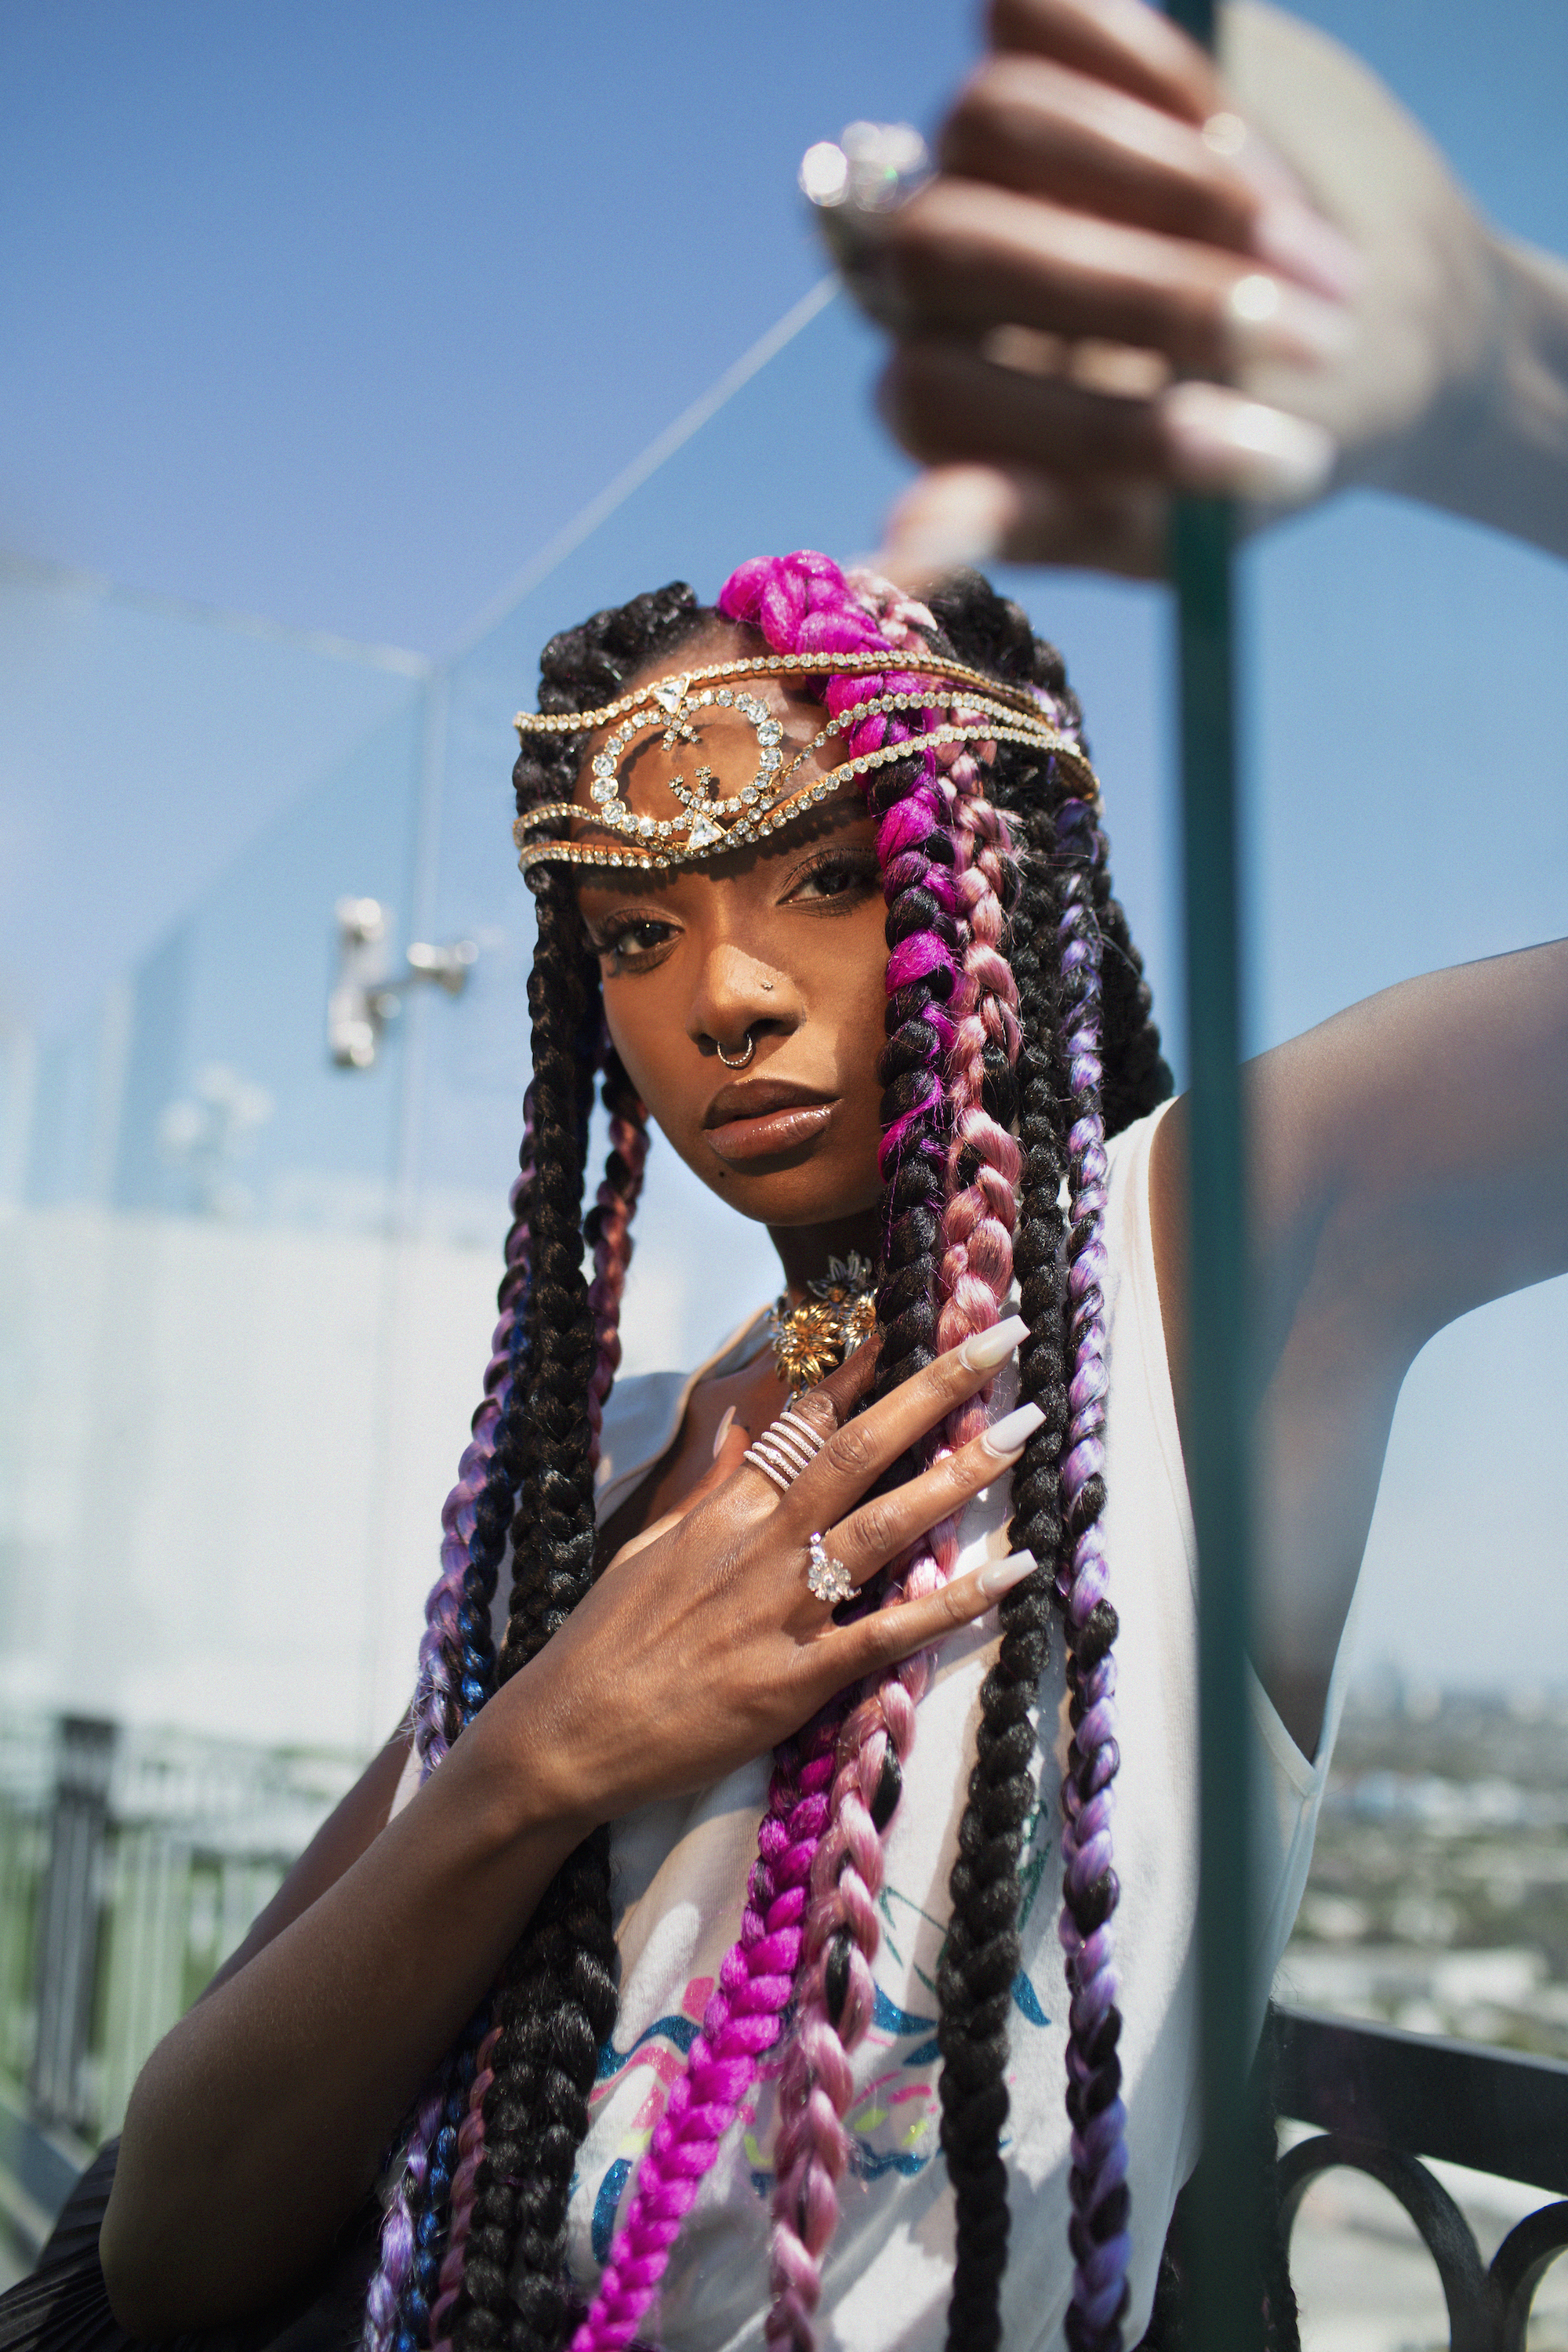 Kiki layne with purple and pink braids and gold headpiece